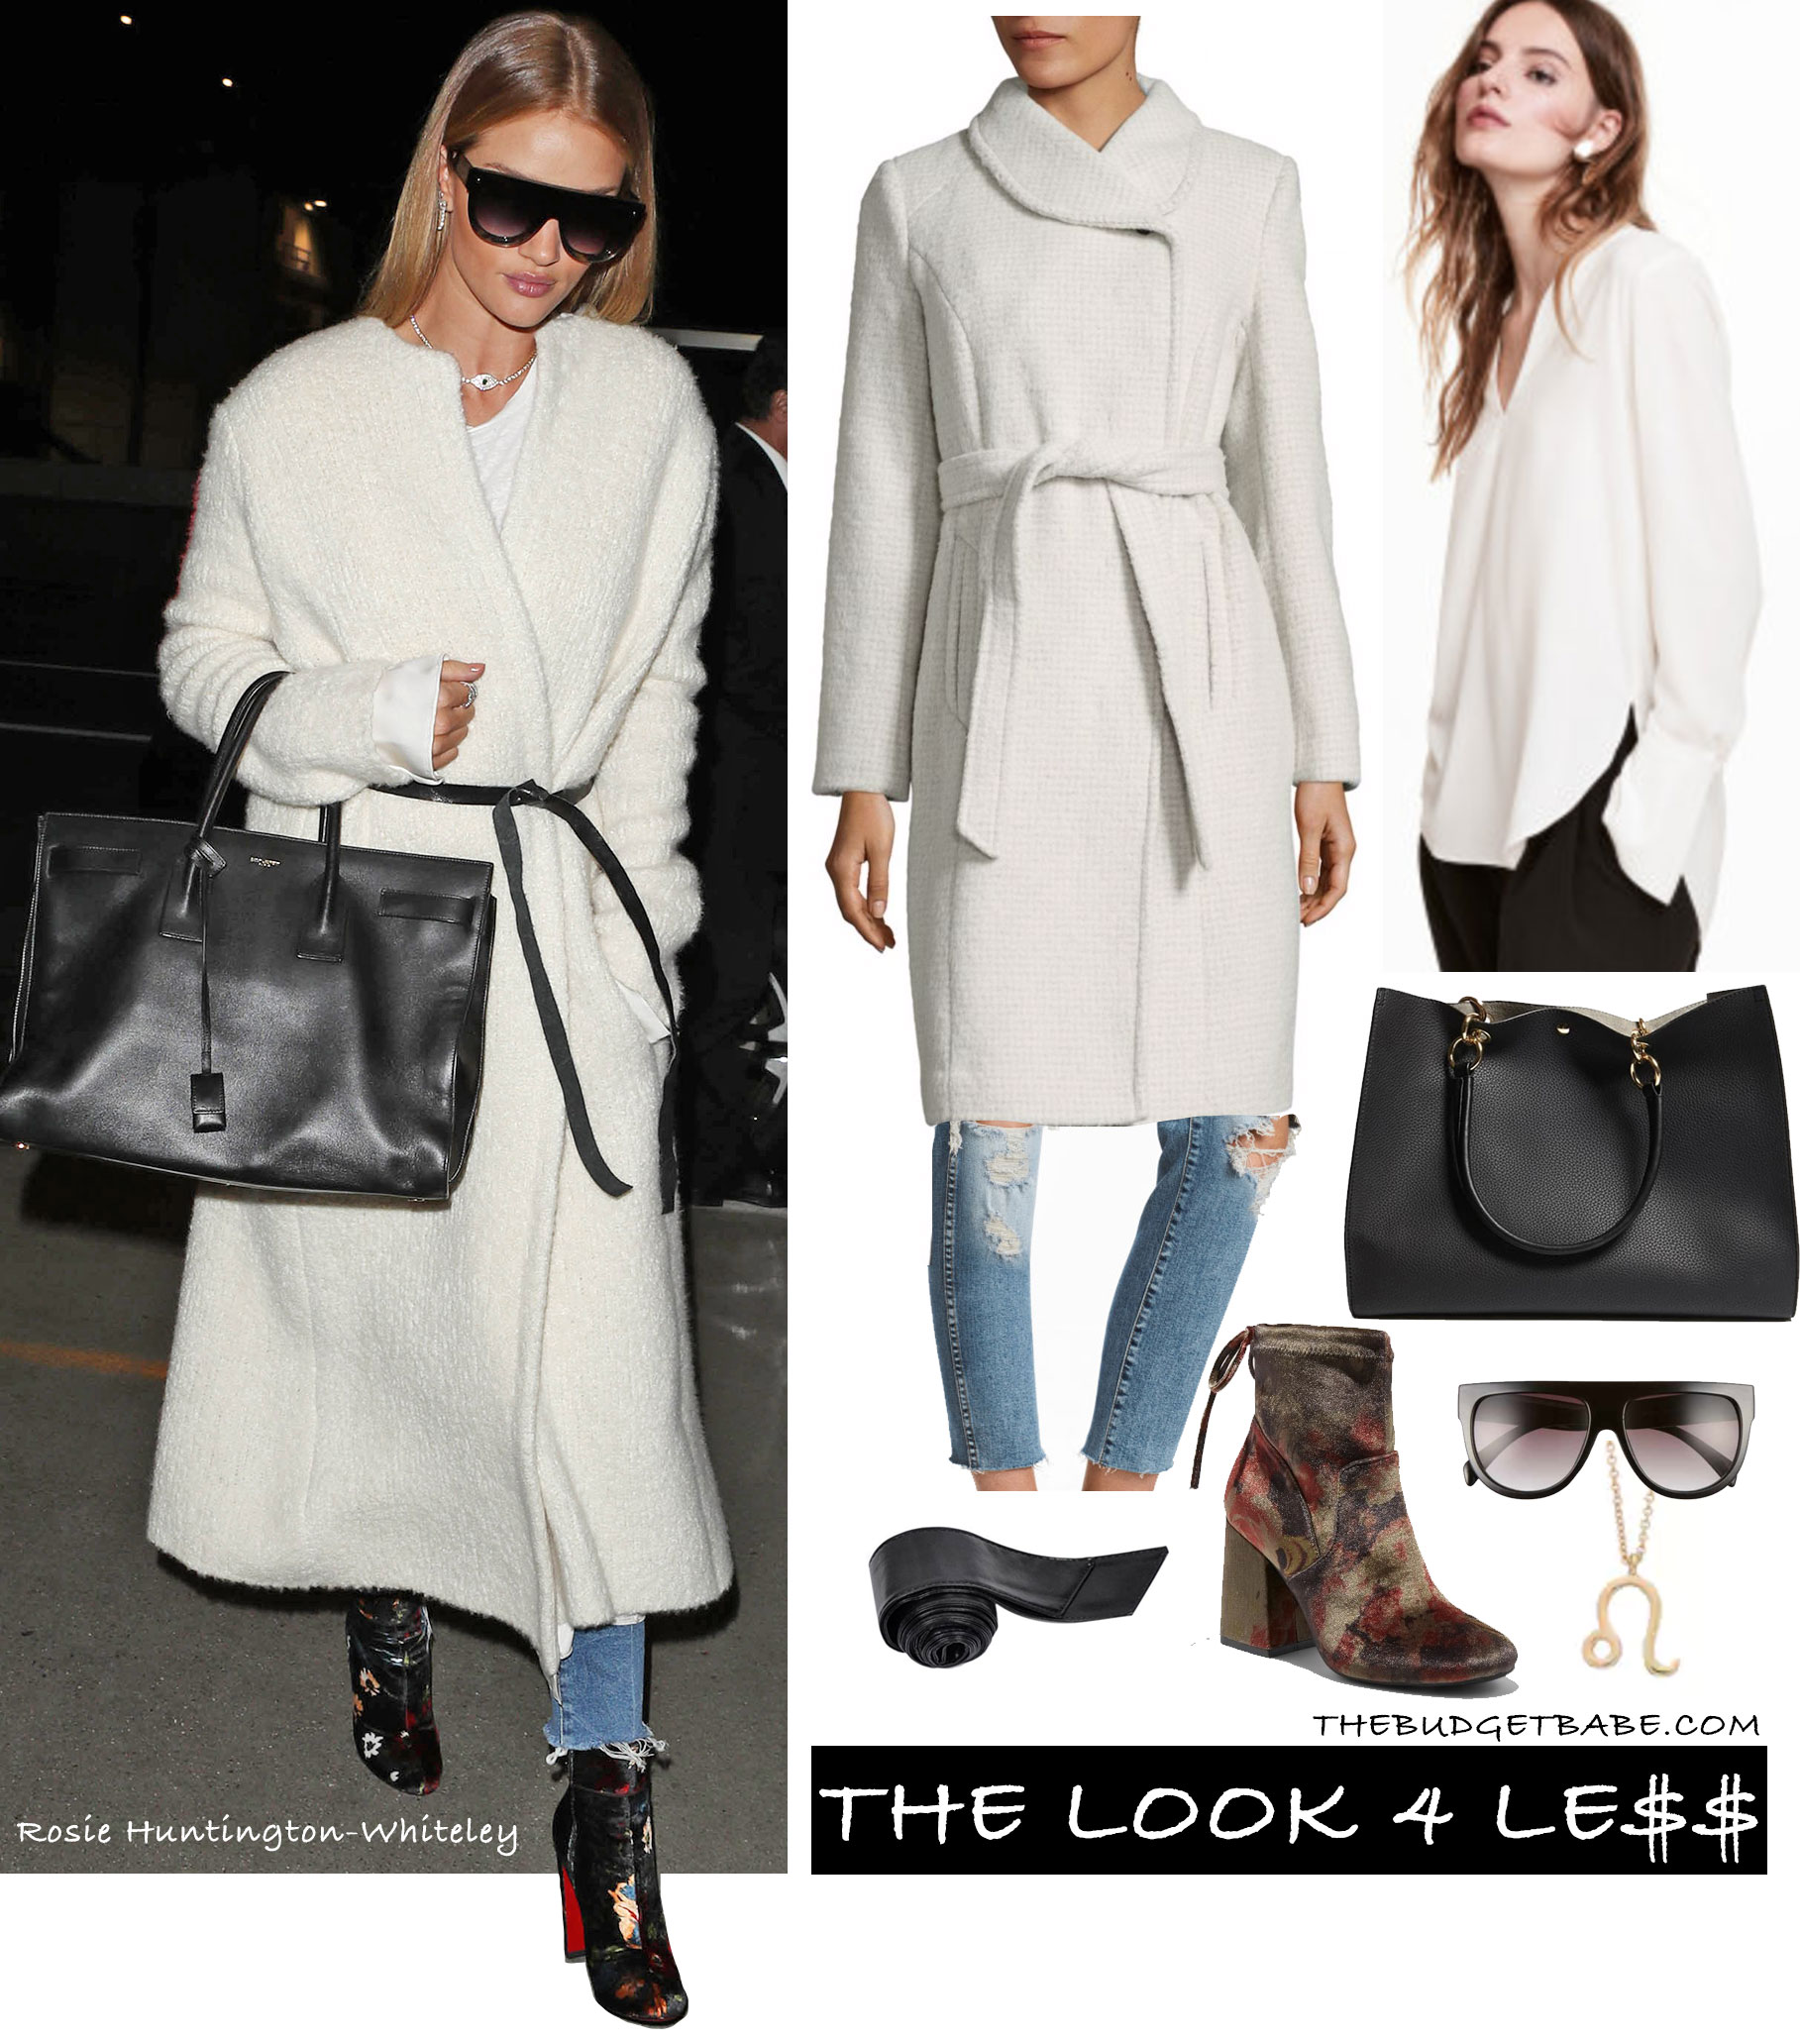 Rosie Huntington-Whiteley wears a white wrap coat by Isabel Marant with Paige jeans, Saint Laurent bag and Christian Louboutin shoes.